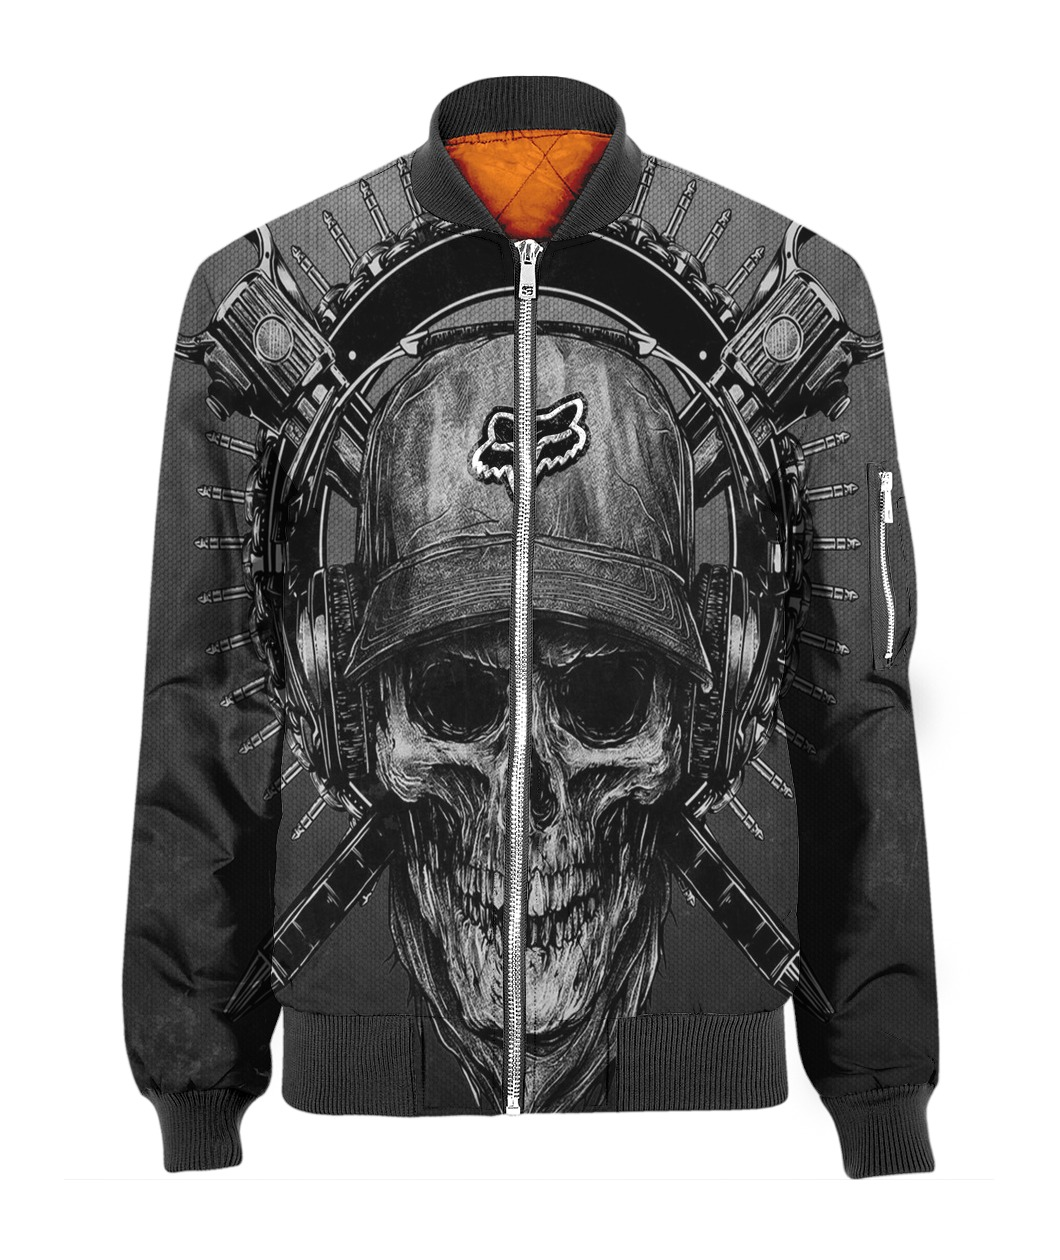 Terror noise division fox racing all over print bomber